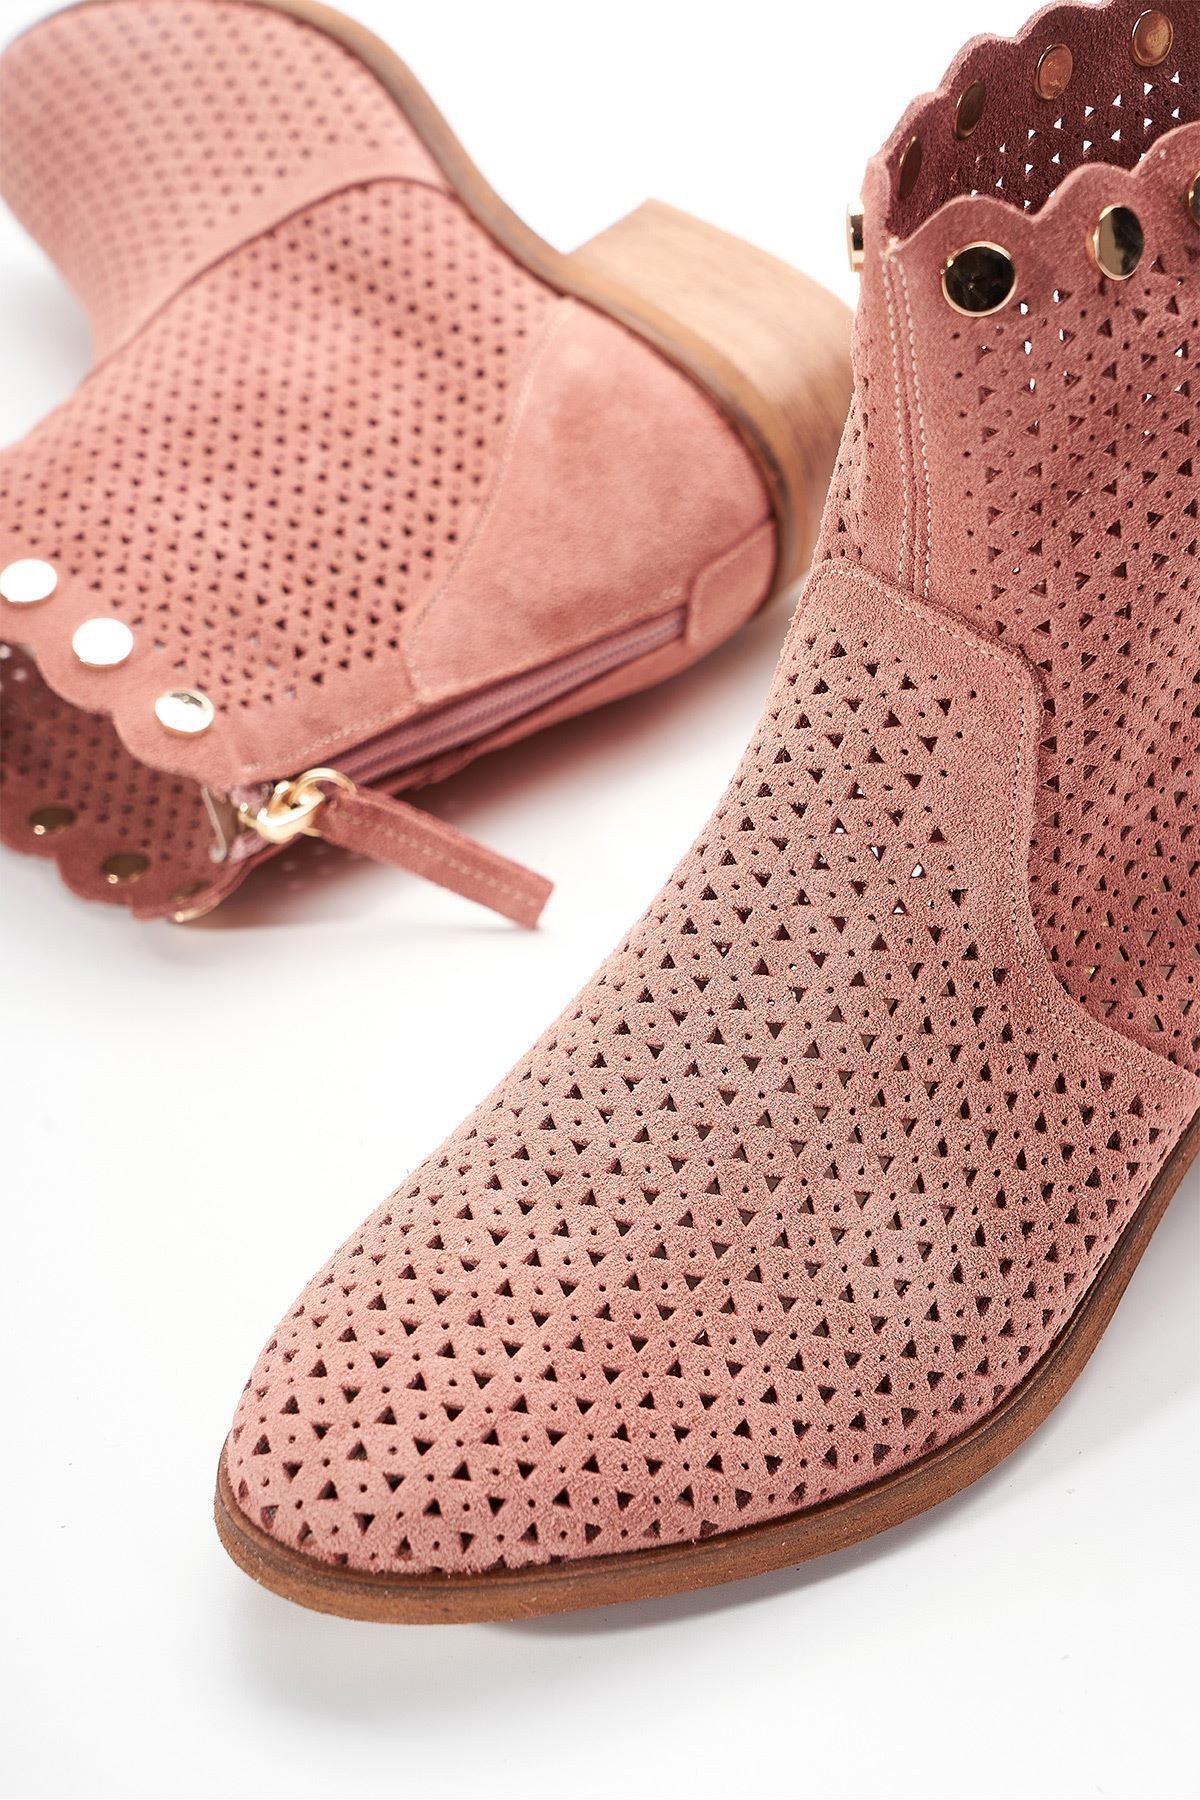 Gust Rose Genuine Leather Women's Summer Boots